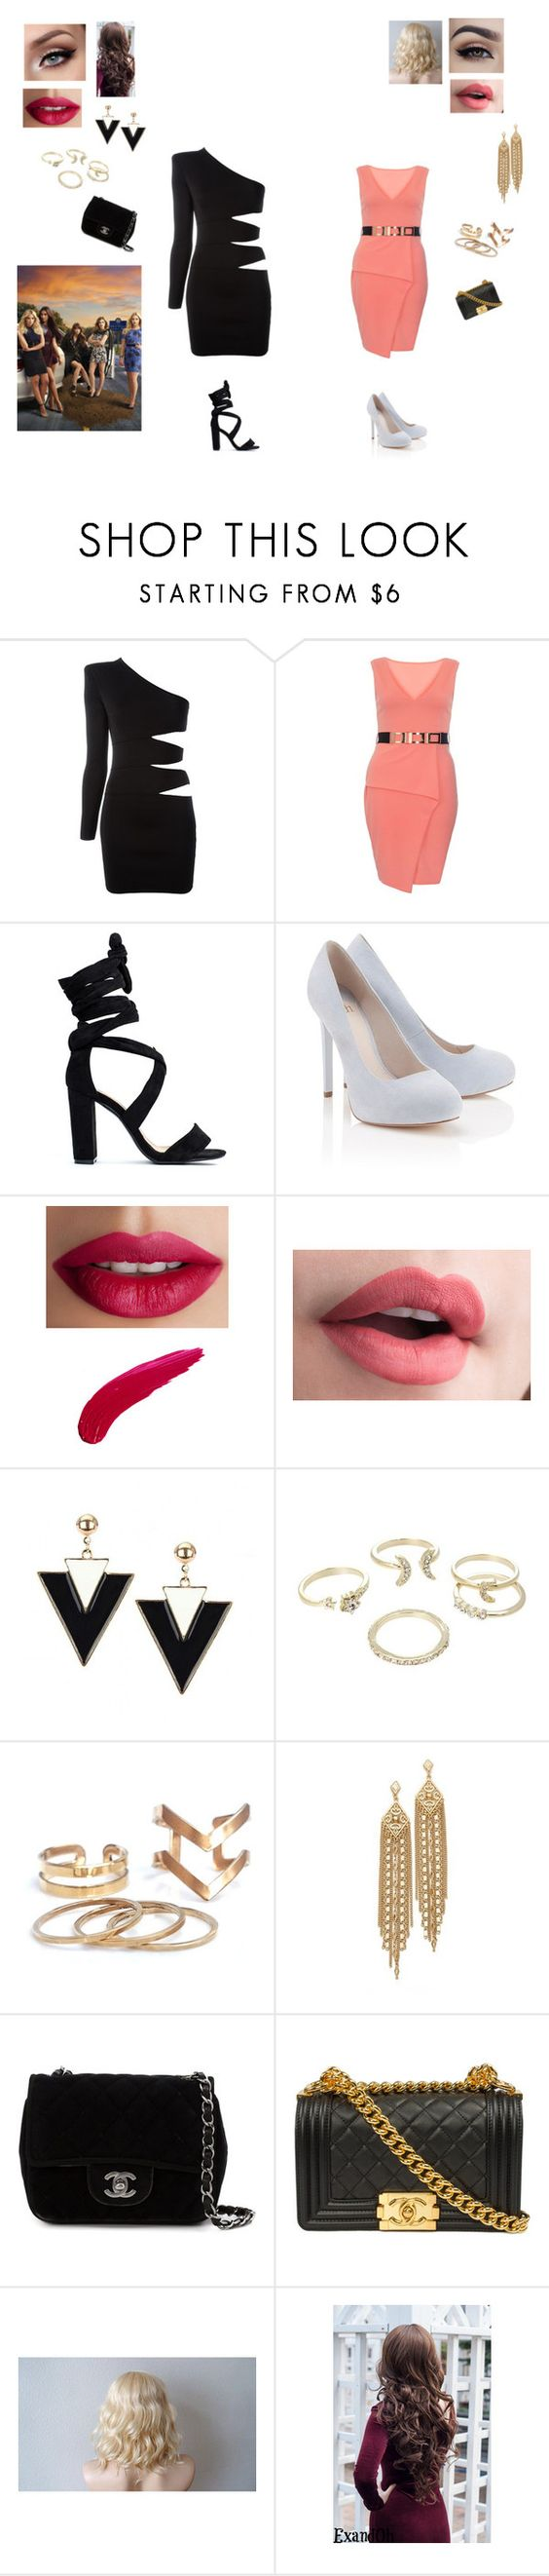 """""""PLL"""" by calilvsla ❤ liked on Polyvore featuring Balmain, Dorothy Perkins, Lipsy, TheBalm, Capwell + Co and Chanel"""